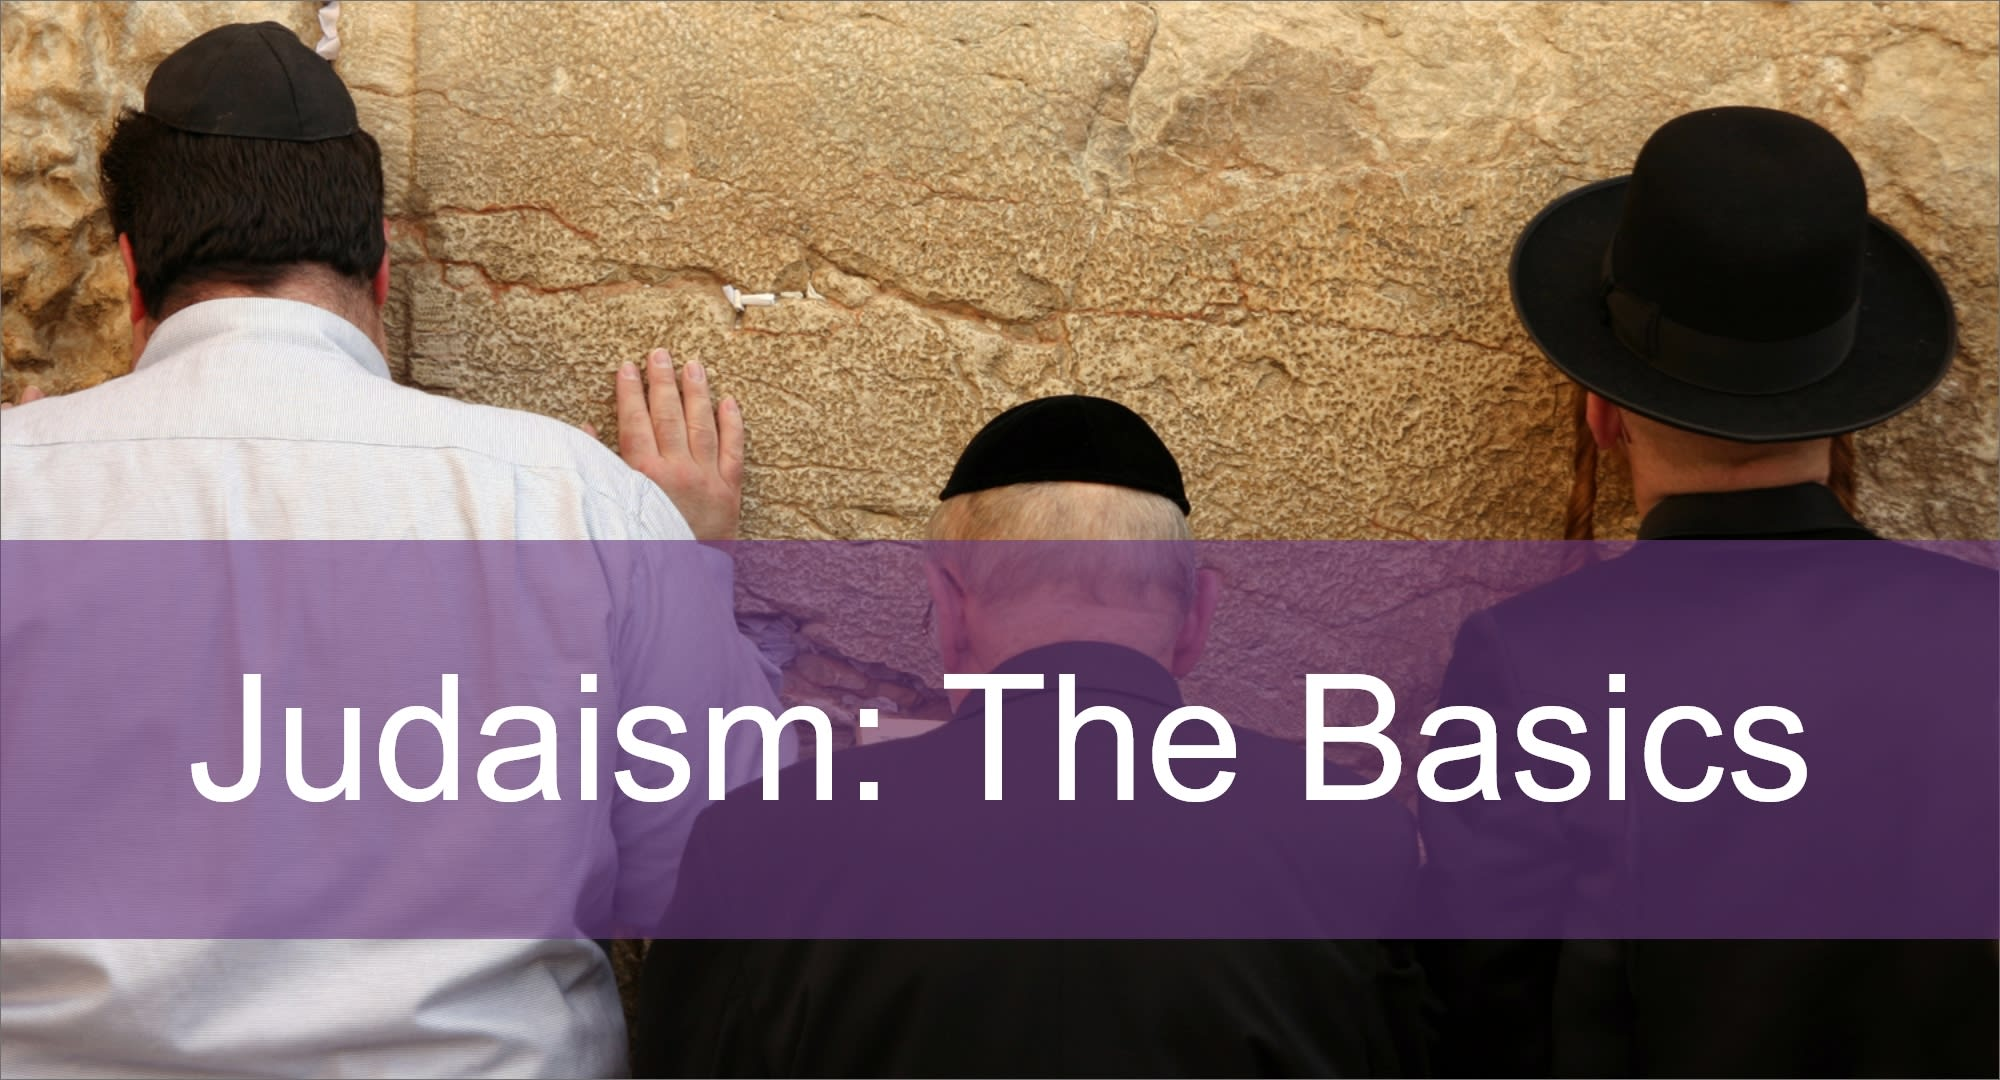 Click here to view articles on Judaism: the Basics